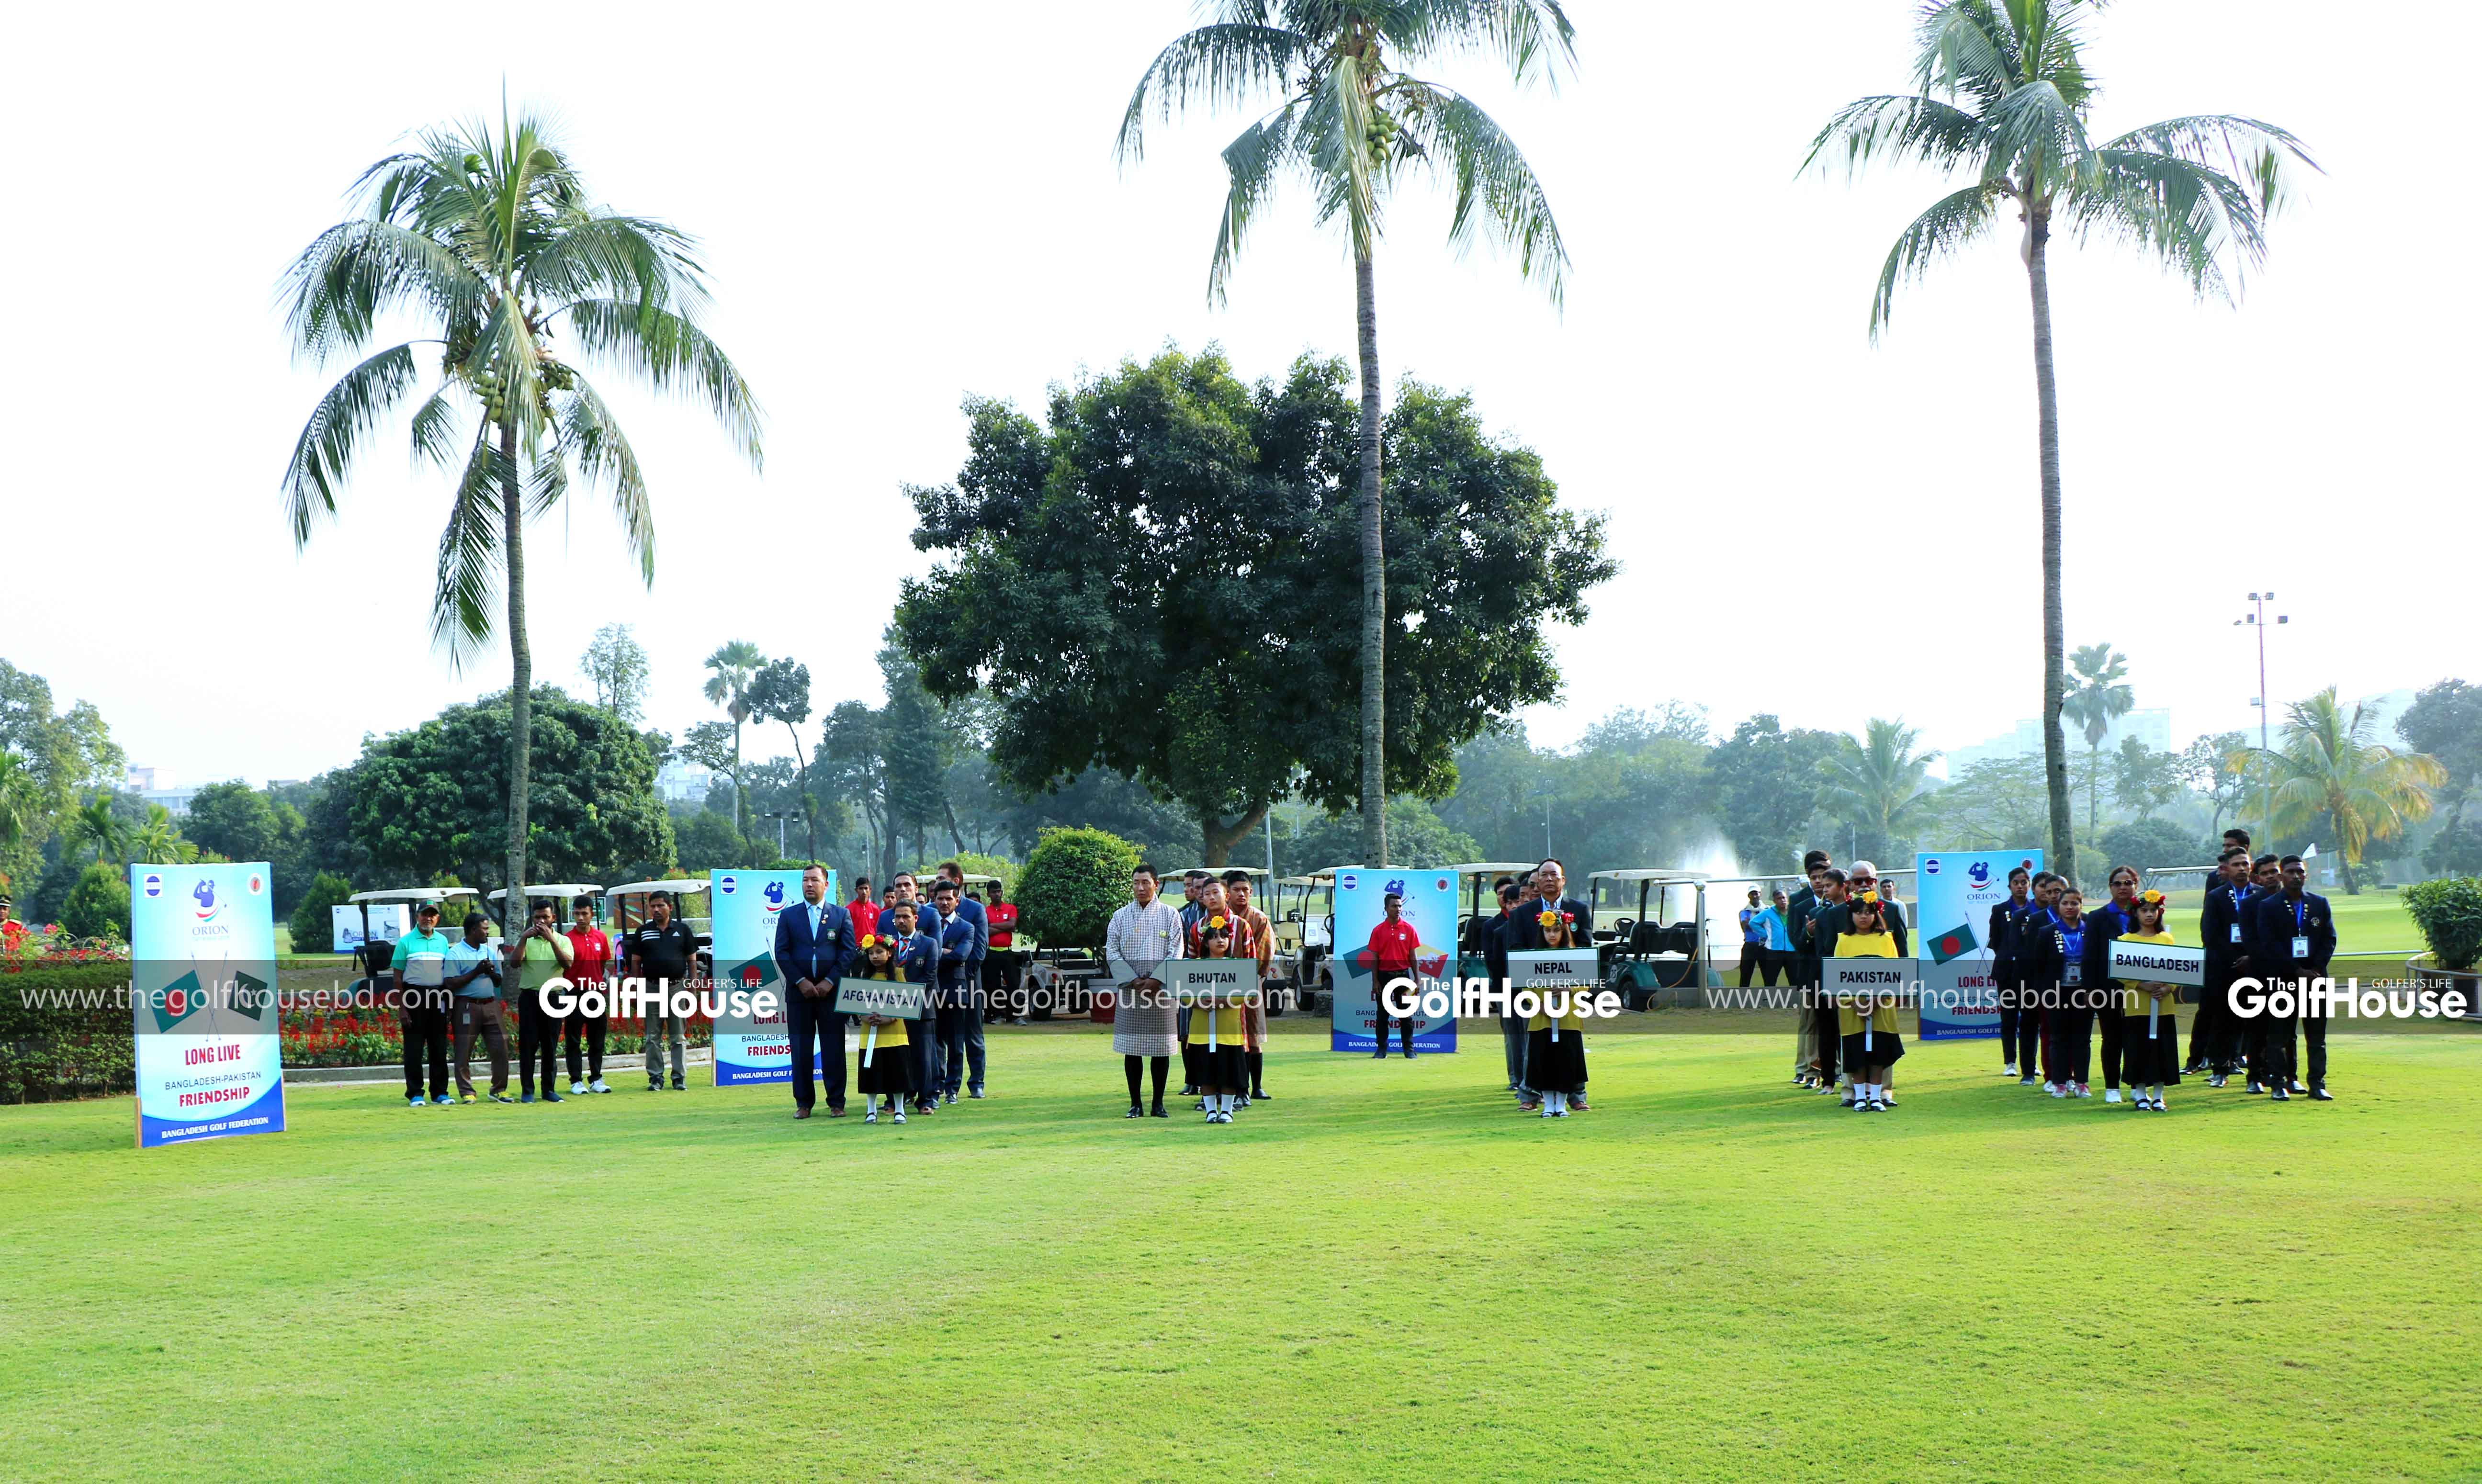 The Orion 34th Bangladesh Amateur Championship 2019 was held at the Kurmitola Golf Club in Dhaka from 15 to 18 January.